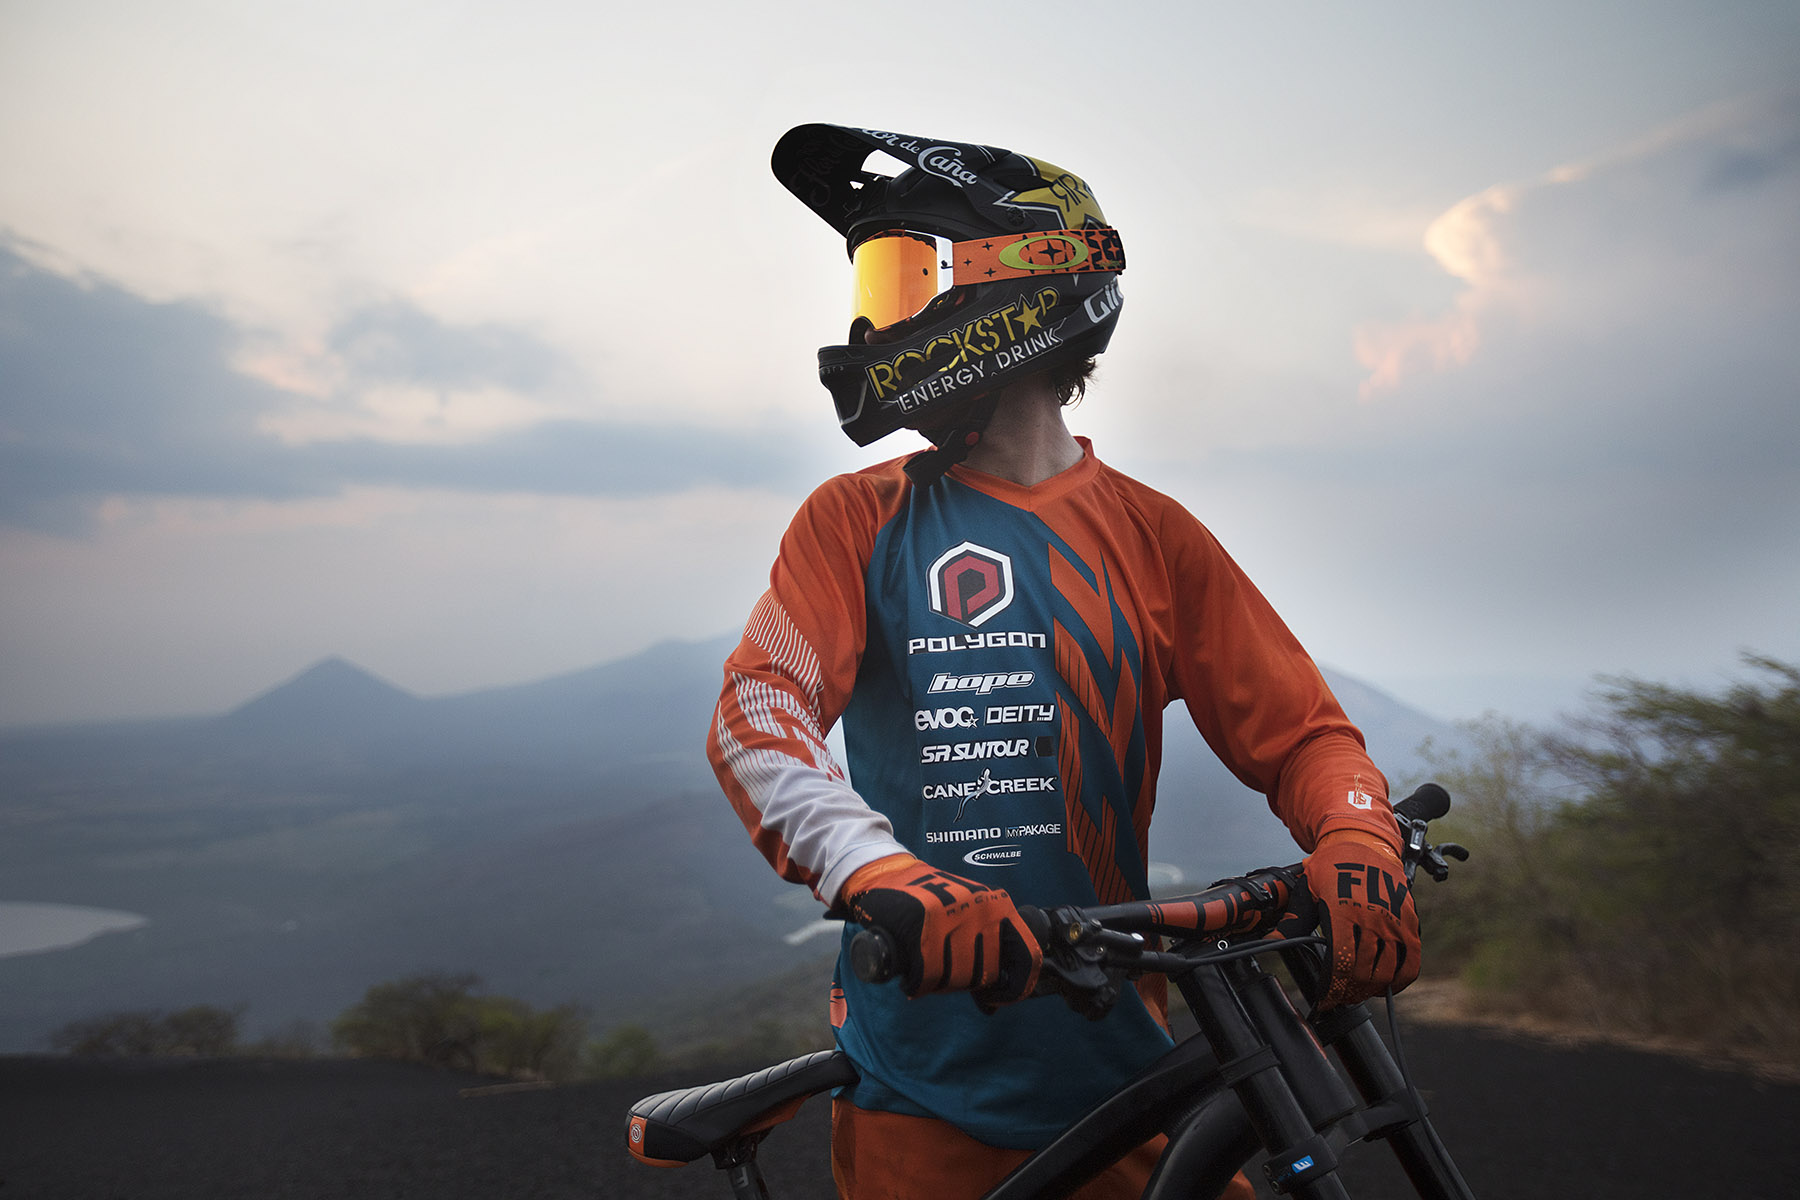 Kurt Sorge mountain bikes the volcano Momotombo  by Boston based commercial lifestyle photographer Brian Nevins